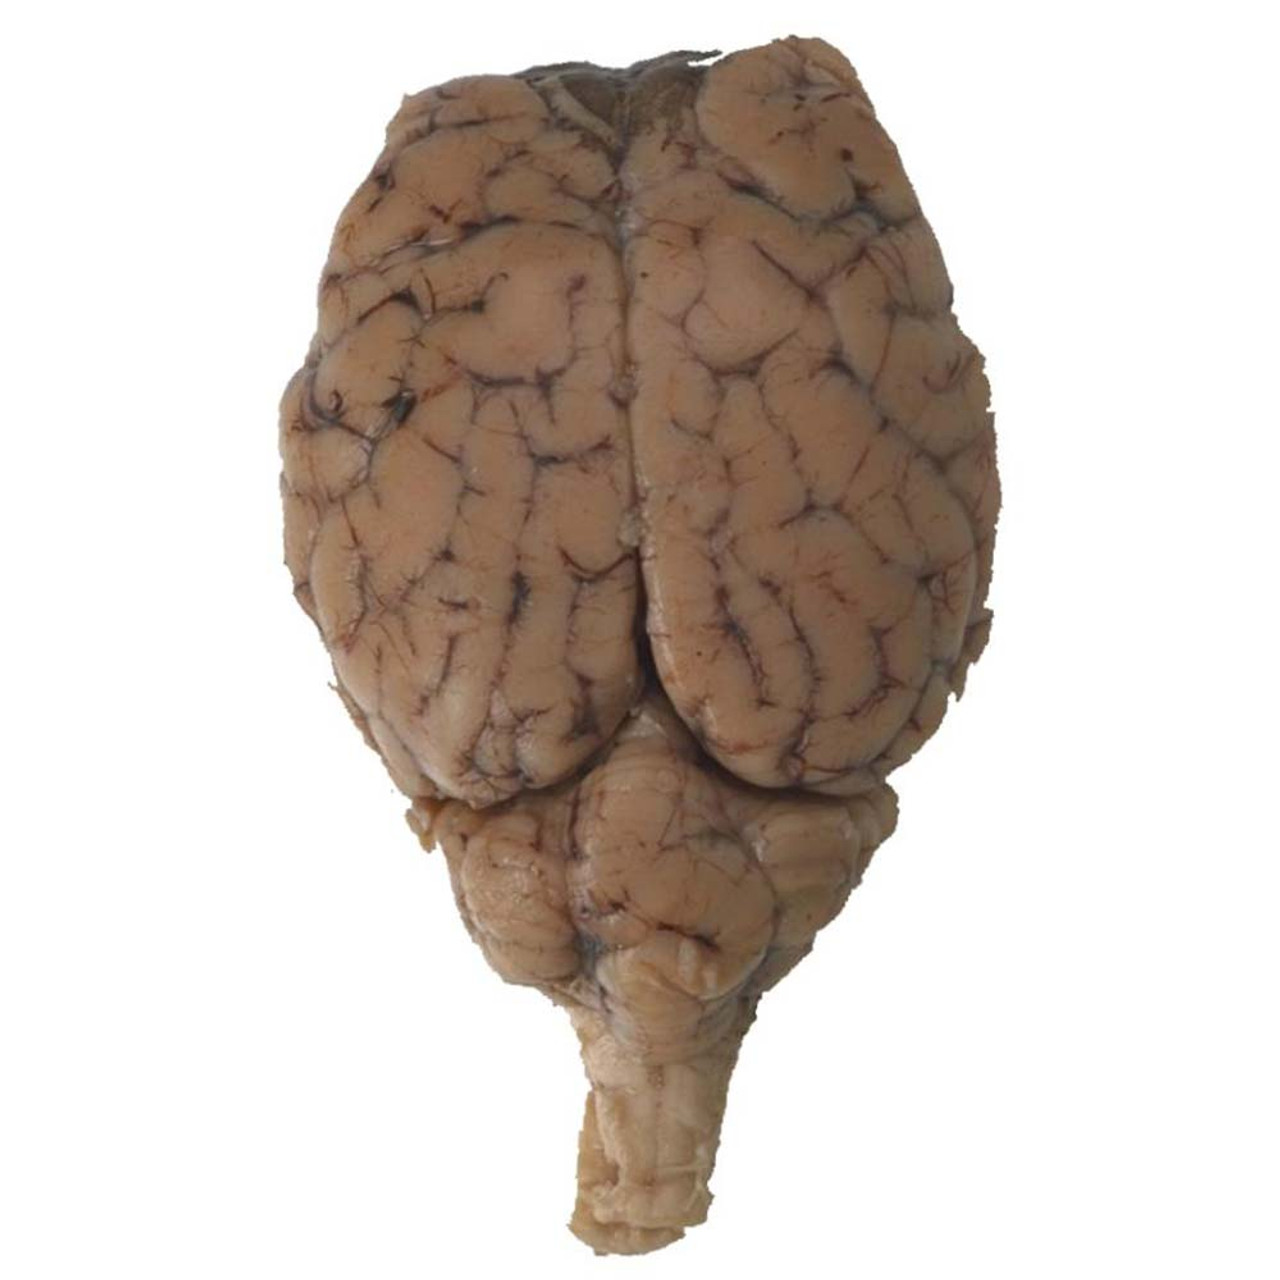 Sheep Brain - Cranial Nerves Dissection